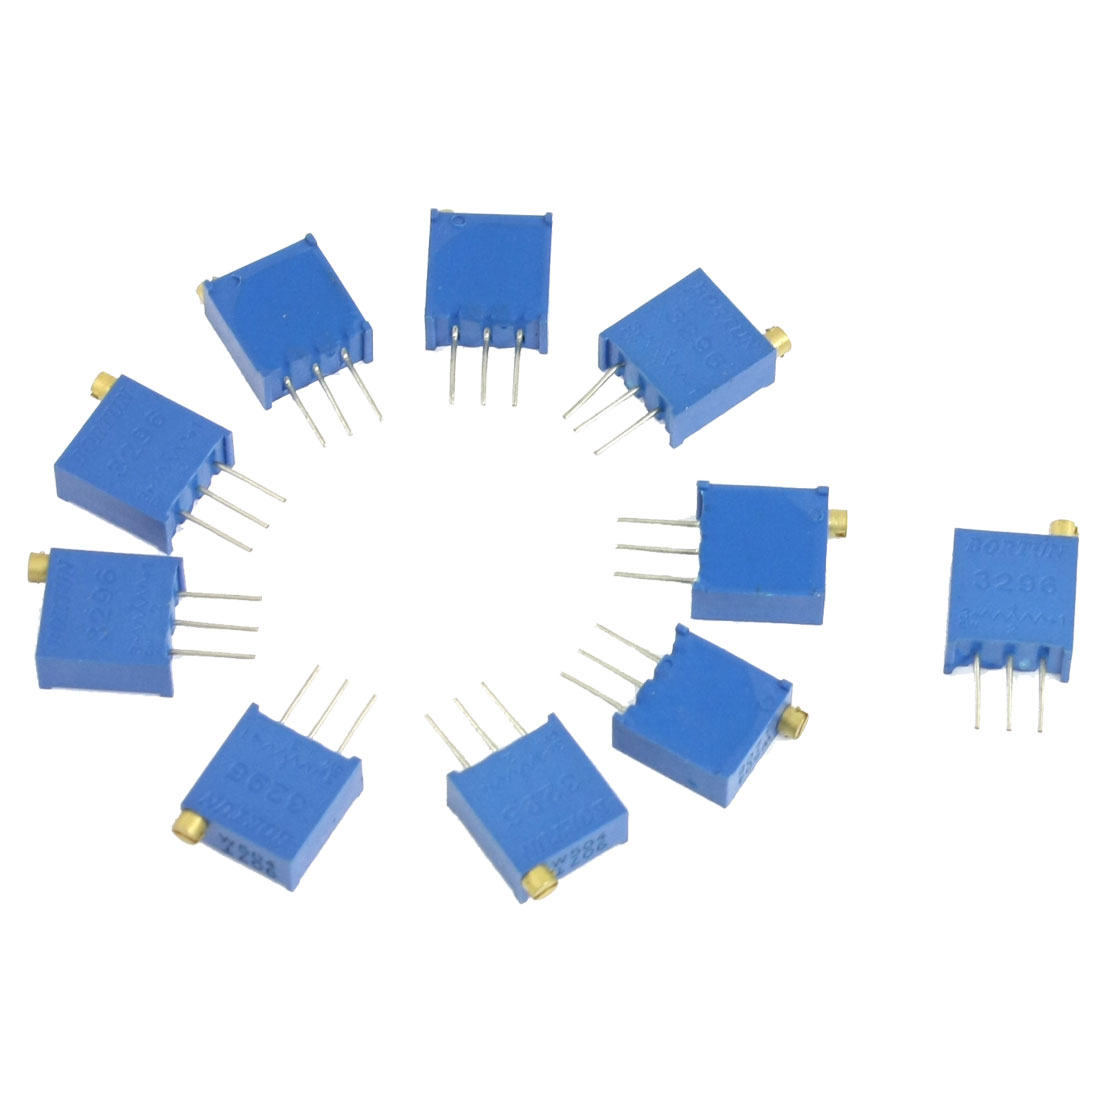 10 Pcs 3296W 1K Ohm Trim Pot Trimmer Potentiometer 1/2W